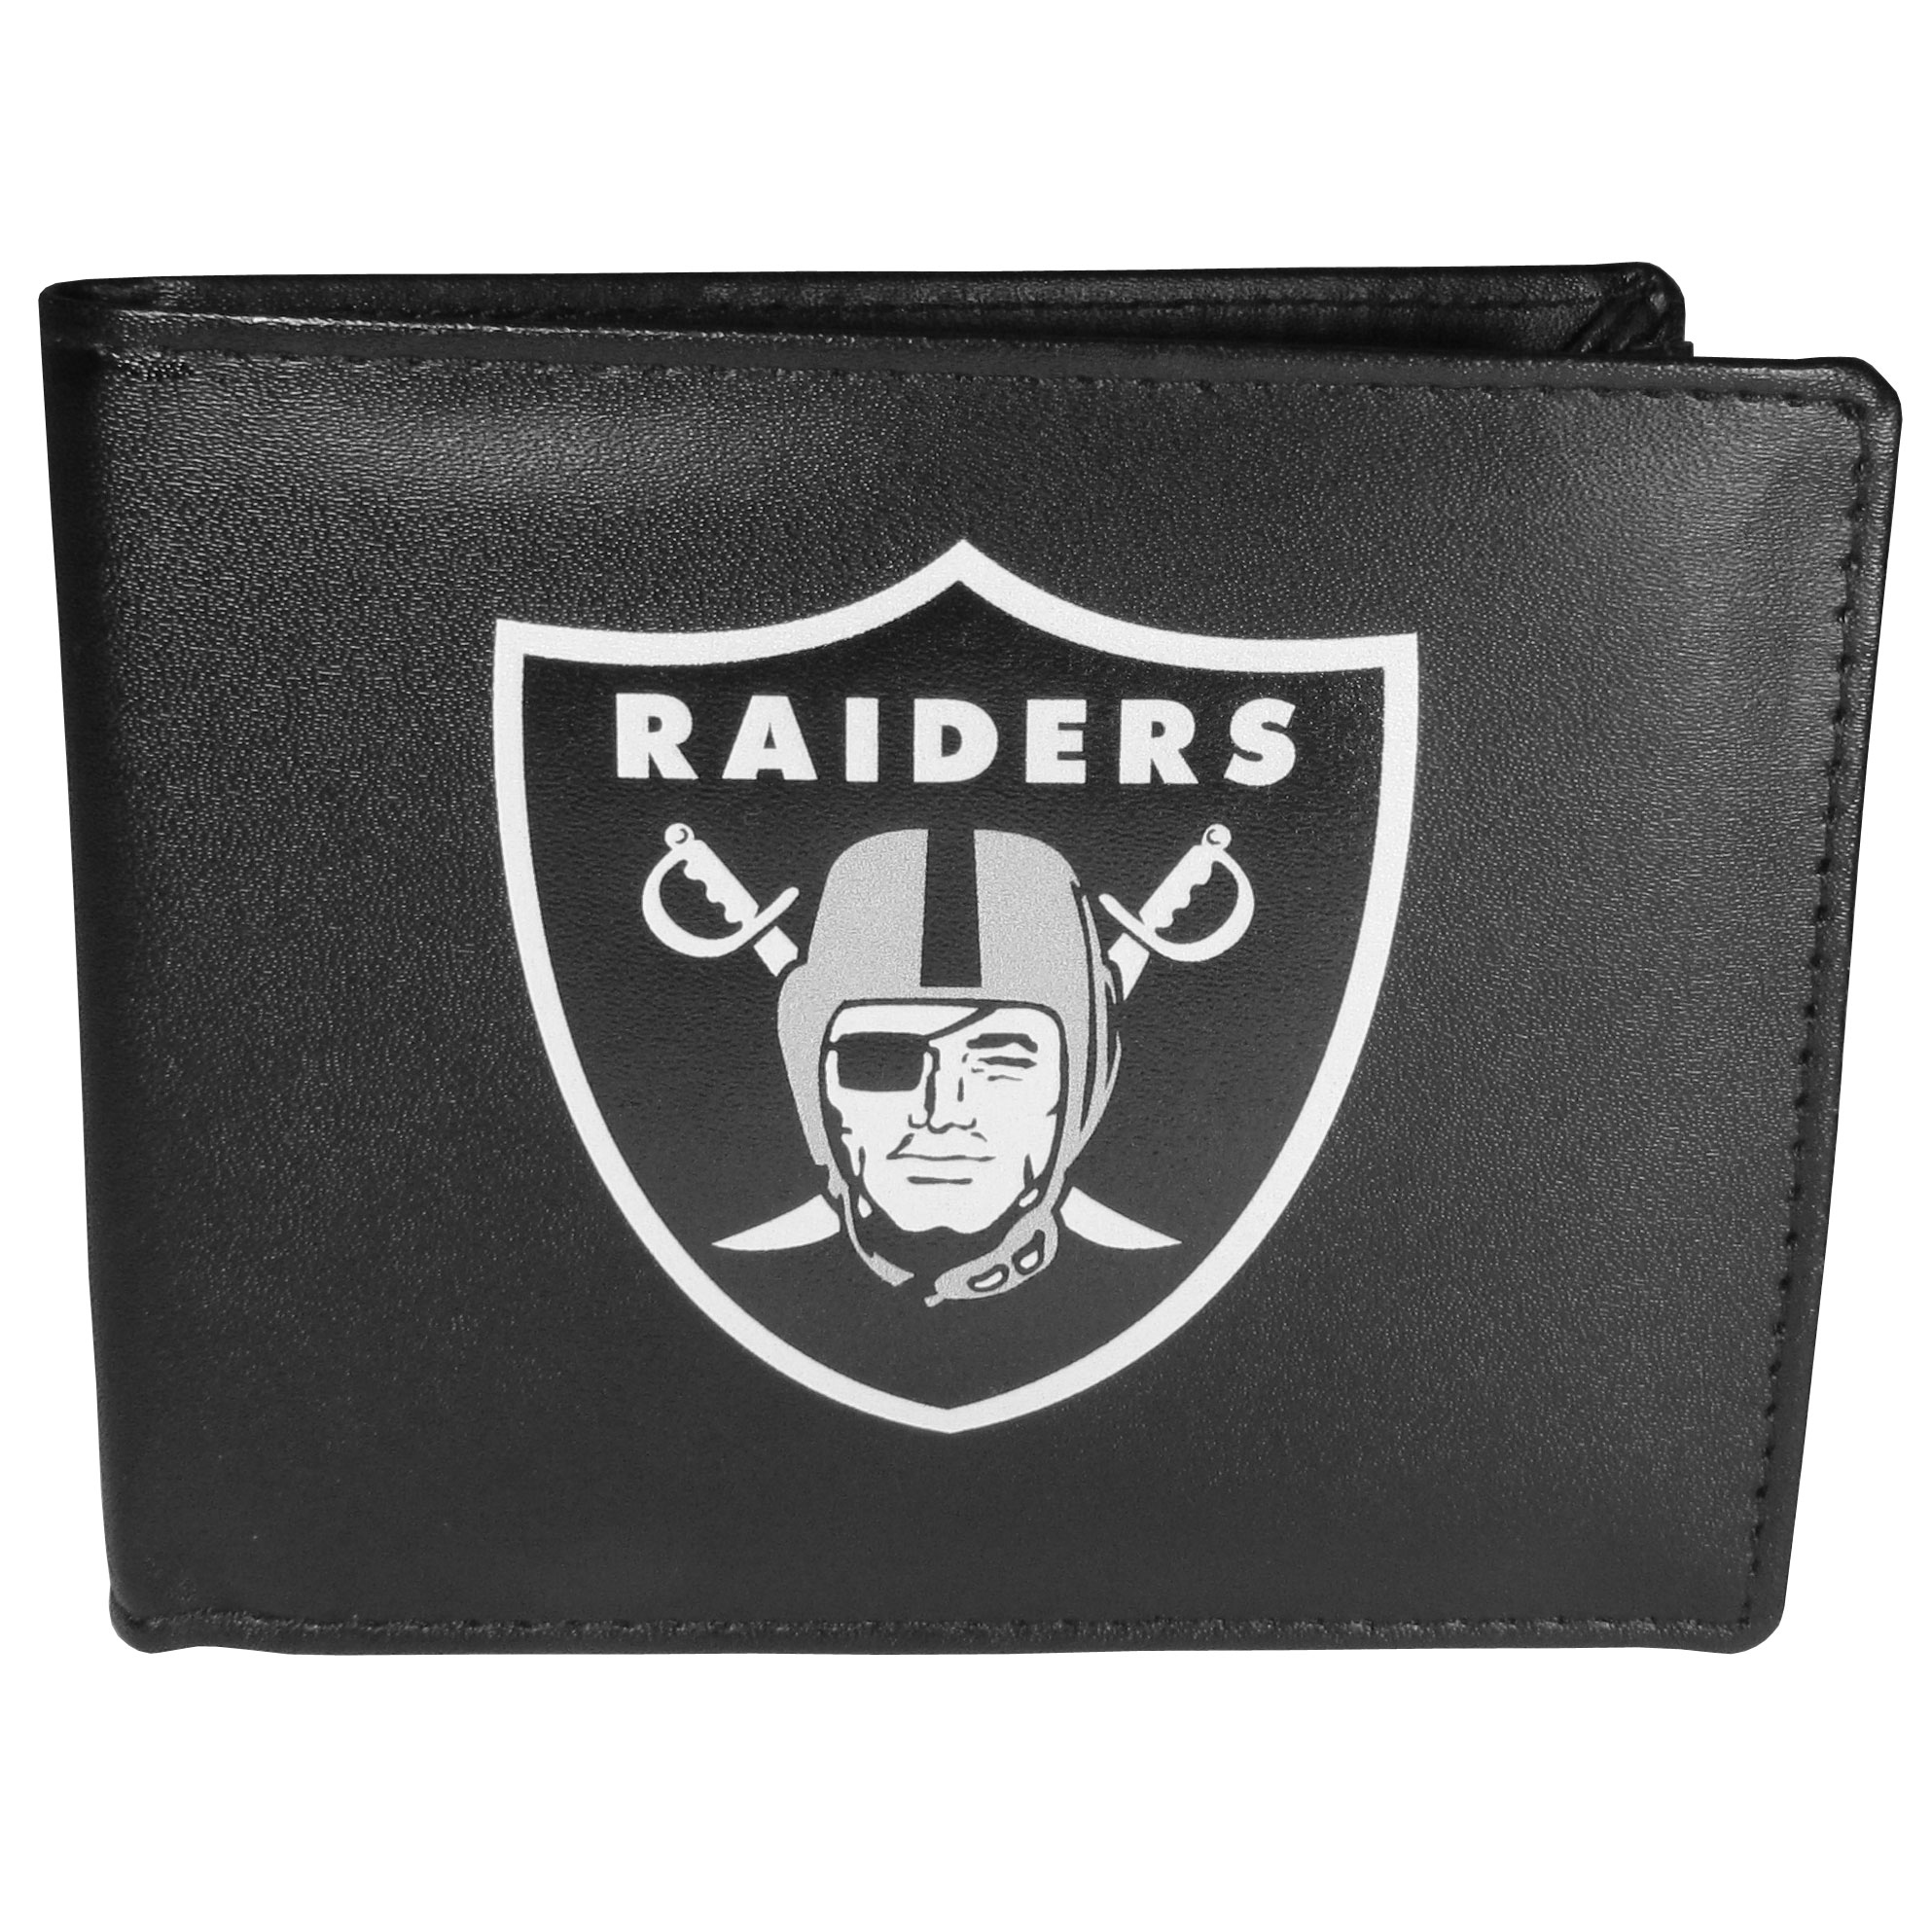 Oakland Raiders Leather Bi-fold Wallet, Large Logo - Our classic fine leather bi-fold wallet is meticulously crafted with genuine leather that will age beautifully so you will have a quality wallet for years to come. The wallet opens to a large, billfold pocket and numerous credit card slots and has a convenient windowed ID slot. The front of the wallet features an extra large Oakland Raiders printed logo.